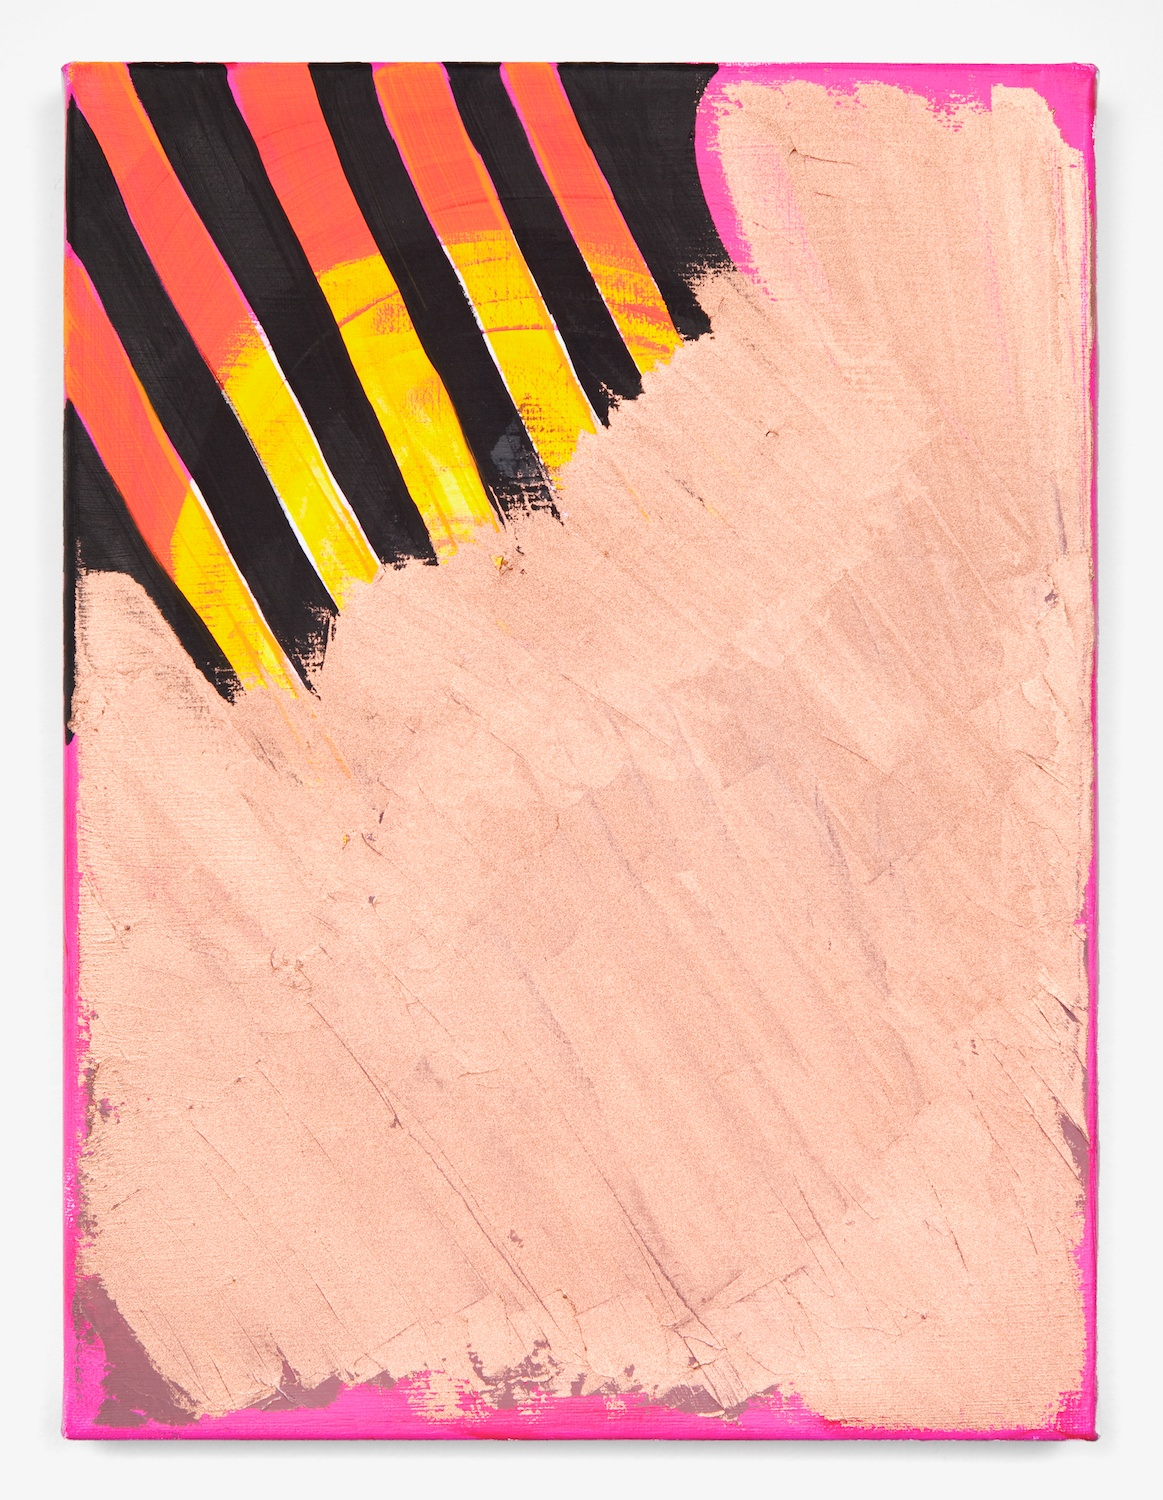 Joanne Greenbaum  Untitled  2011 Oil, acrylic and mixed media on linen 16h x 12w in JG038